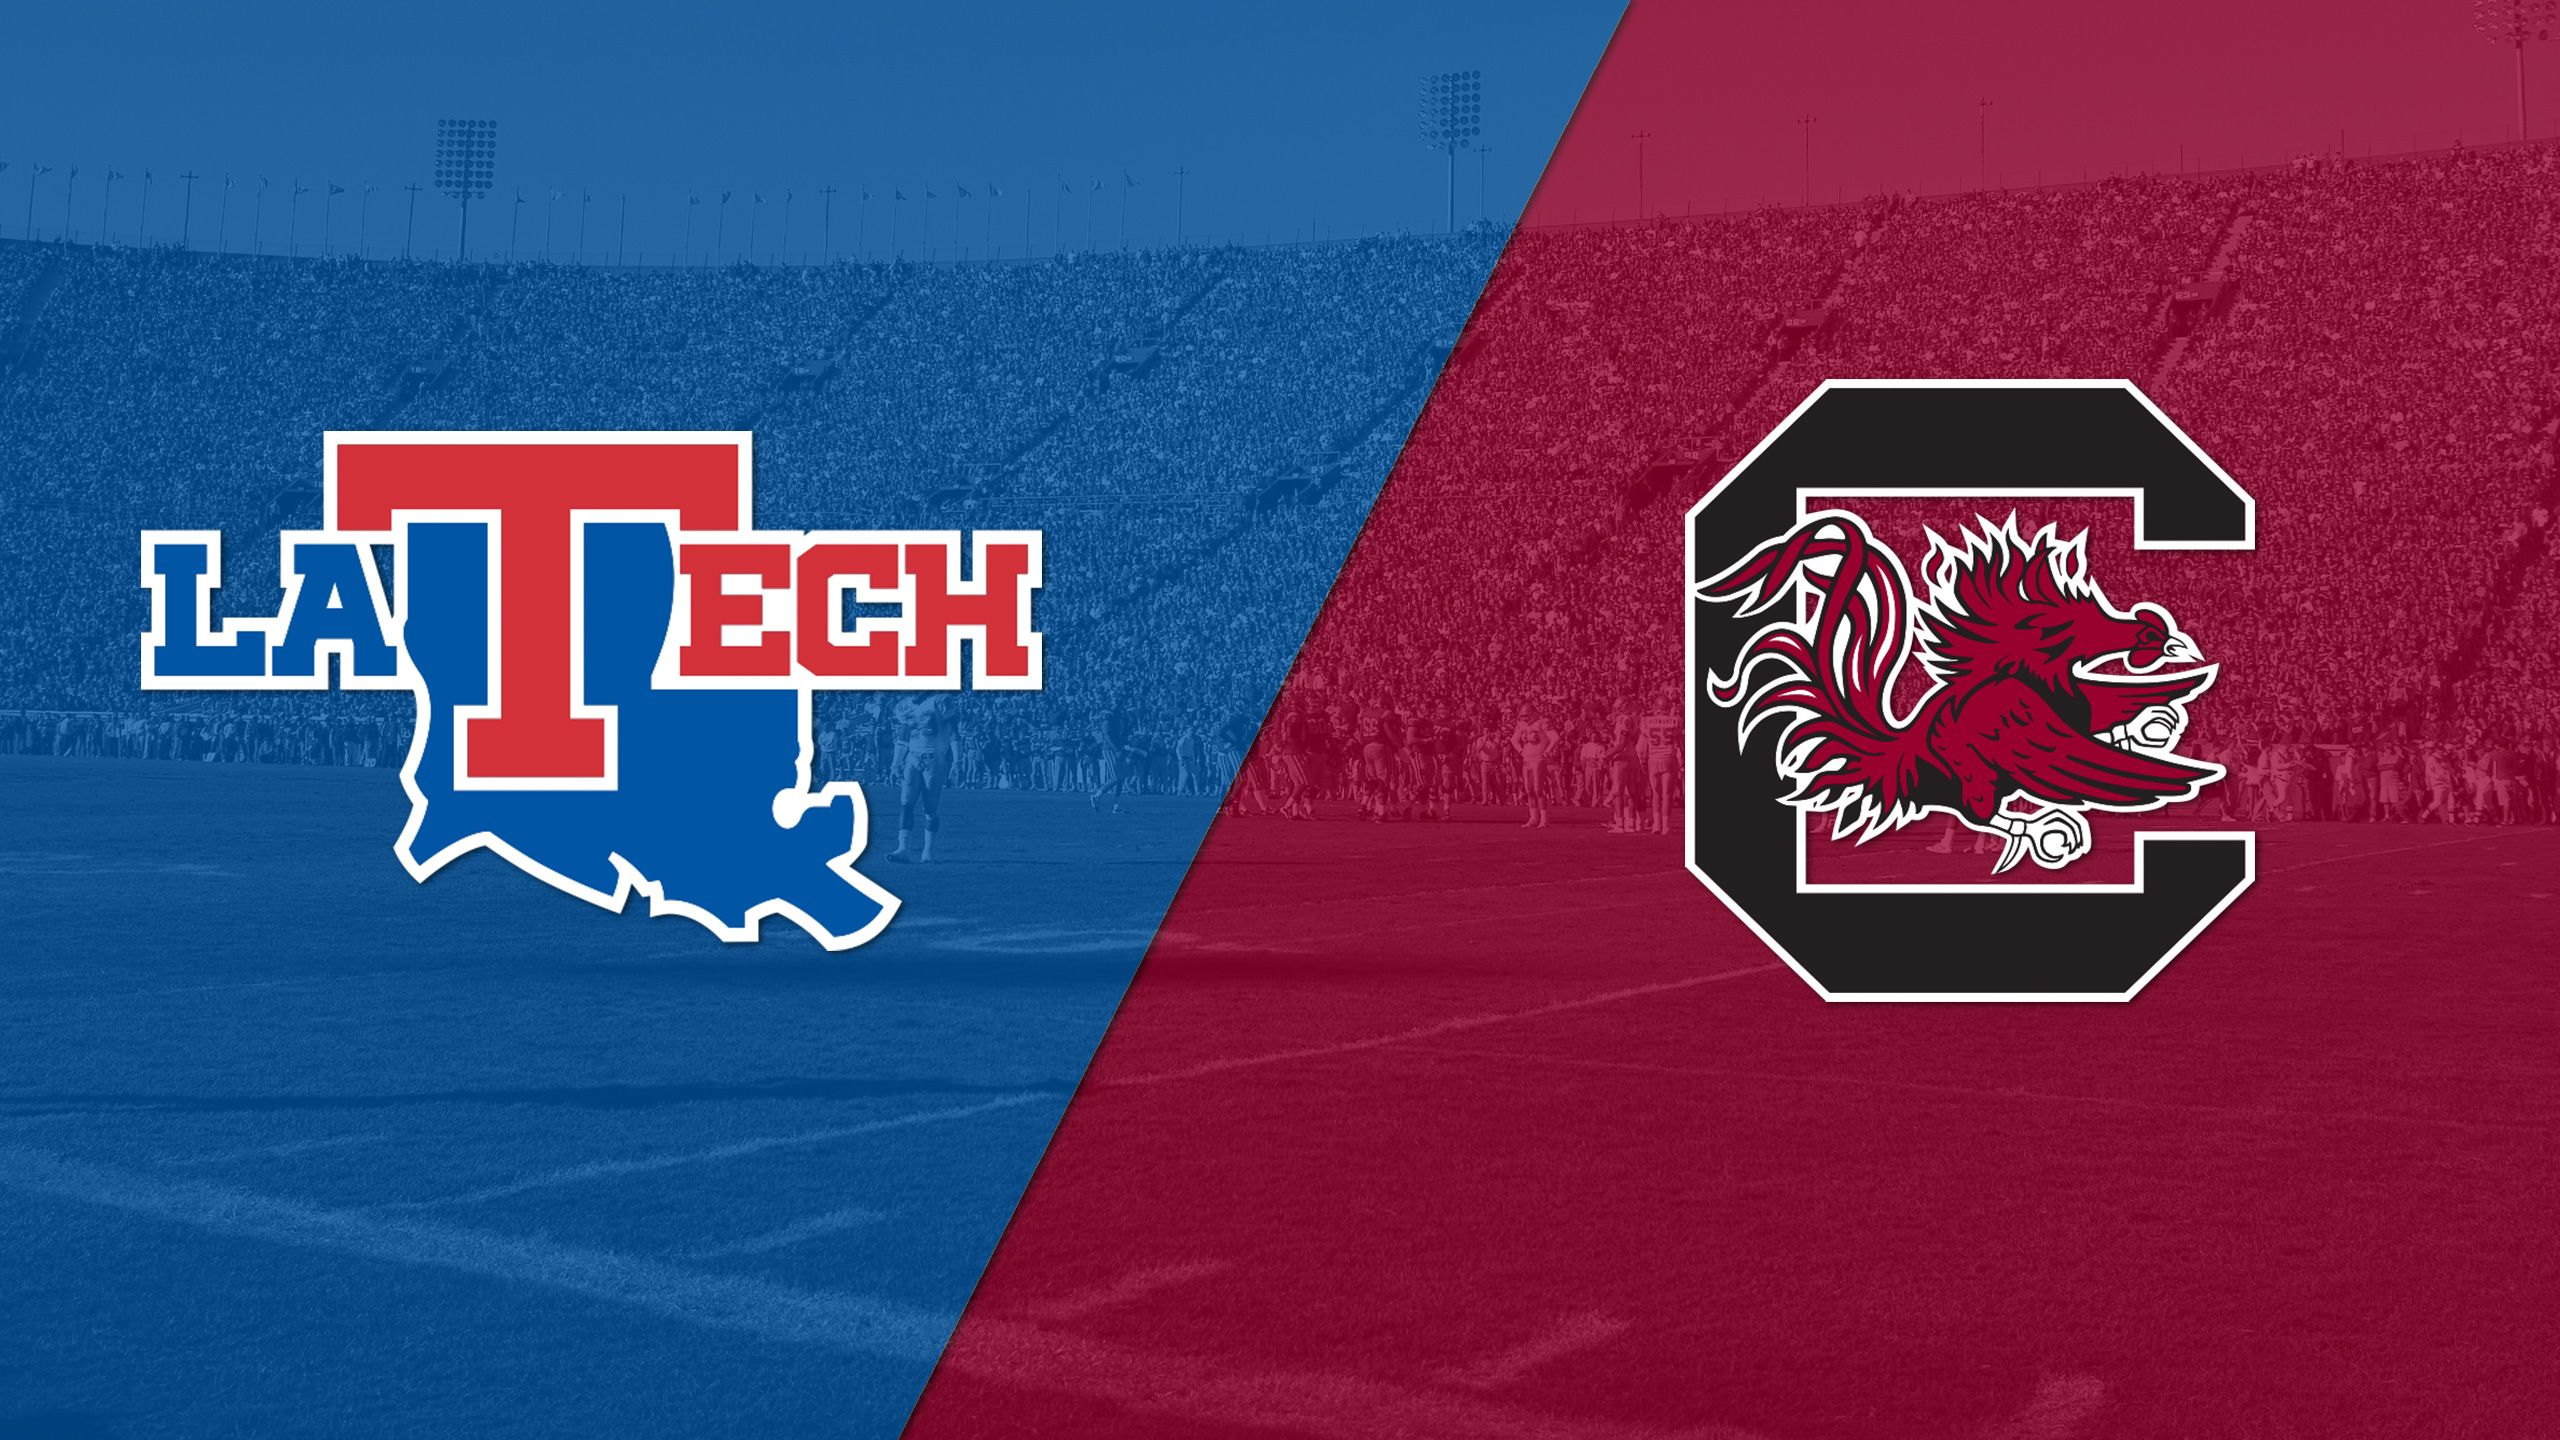 Louisiana Tech vs. South Carolina (Football)